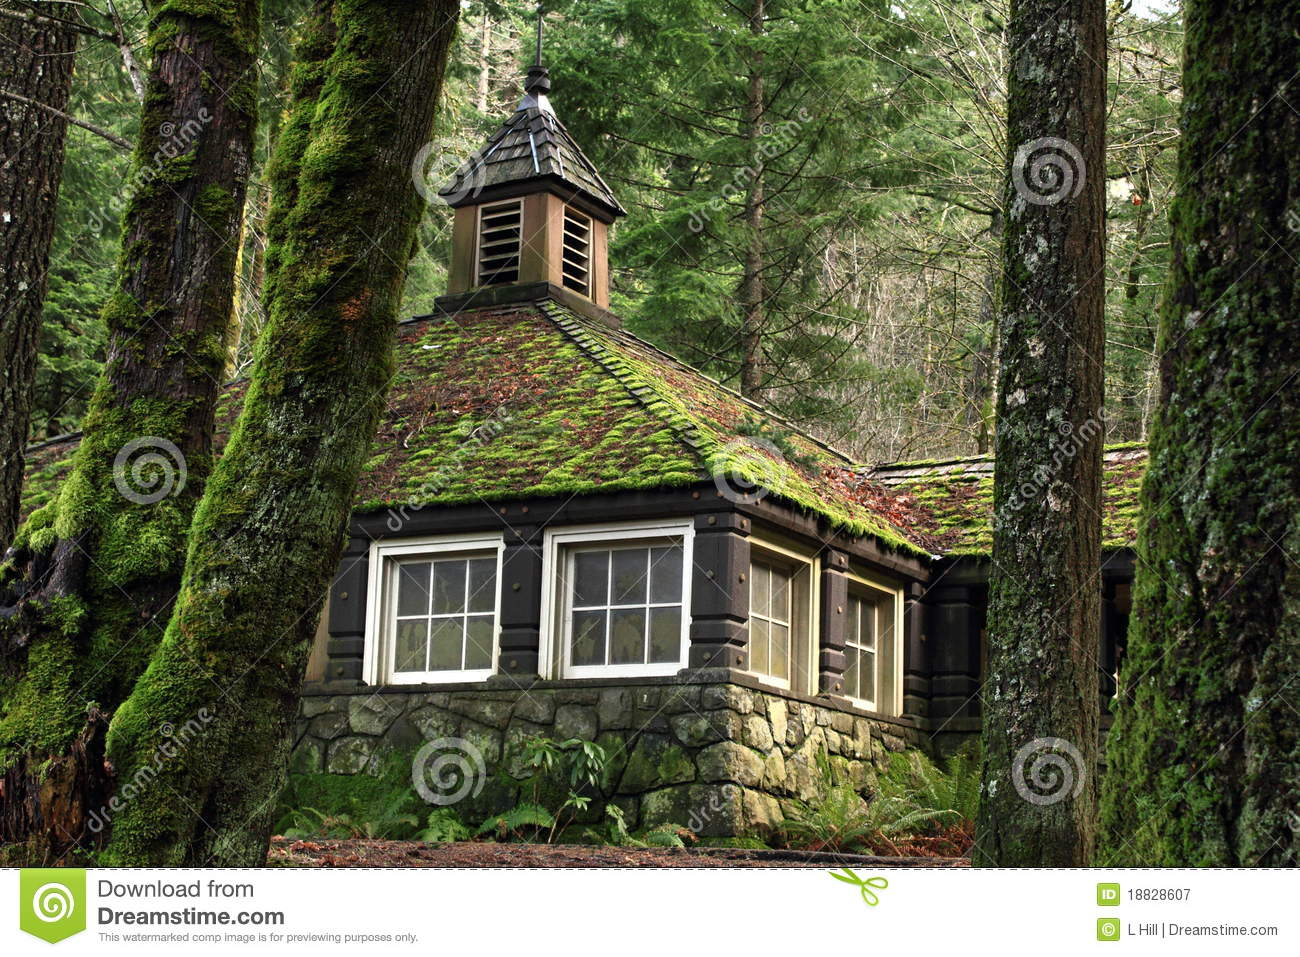 English Cottage Floor Plans Mossy Country Stone Cottage In The Woods Stock Image